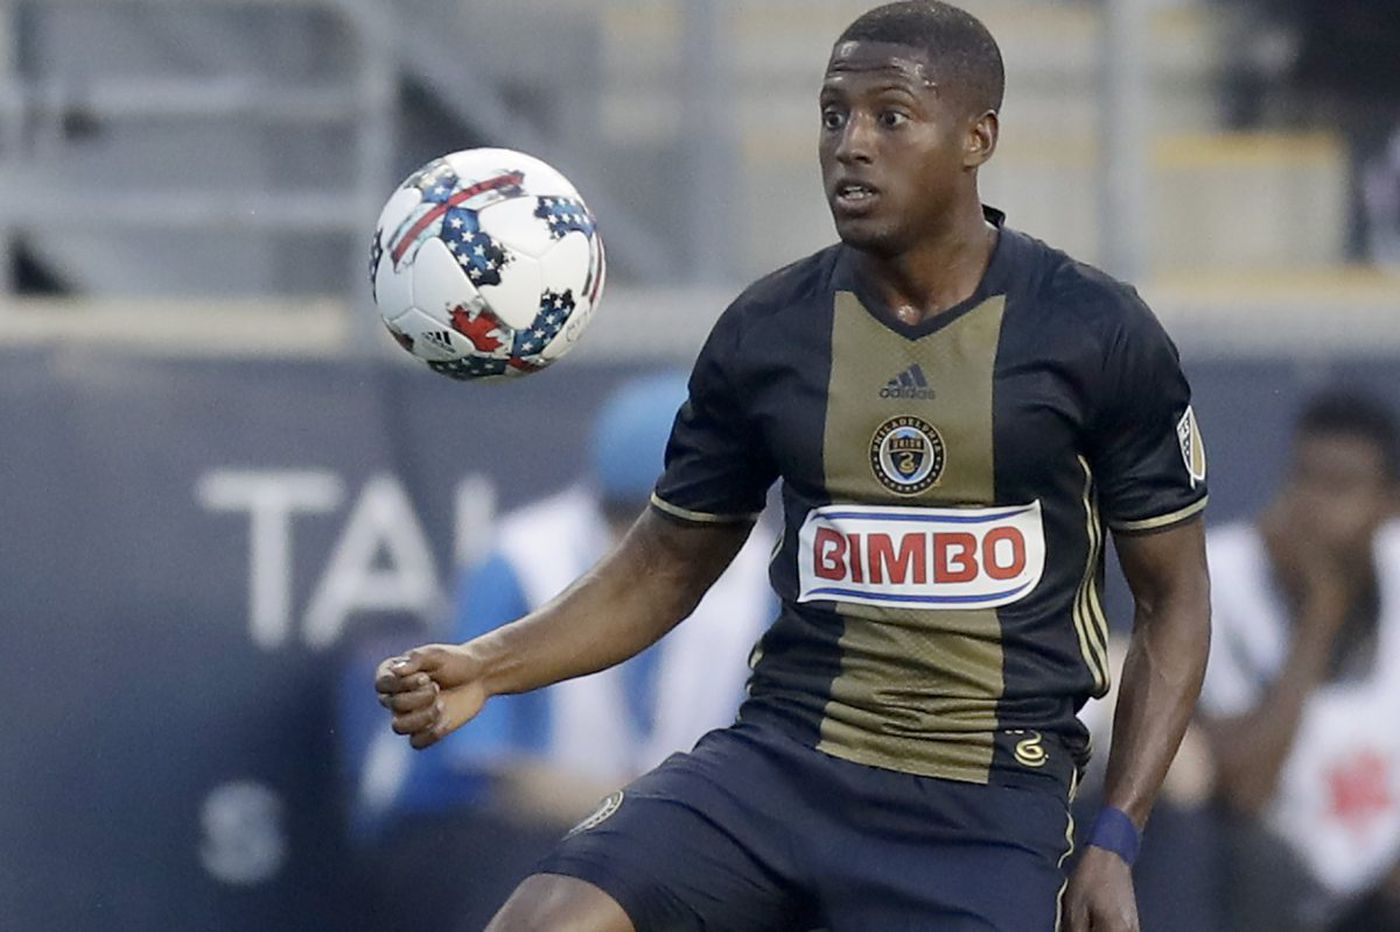 Union's Fafa Picault suspended three games for 'offensive language' in preseason scrimmage